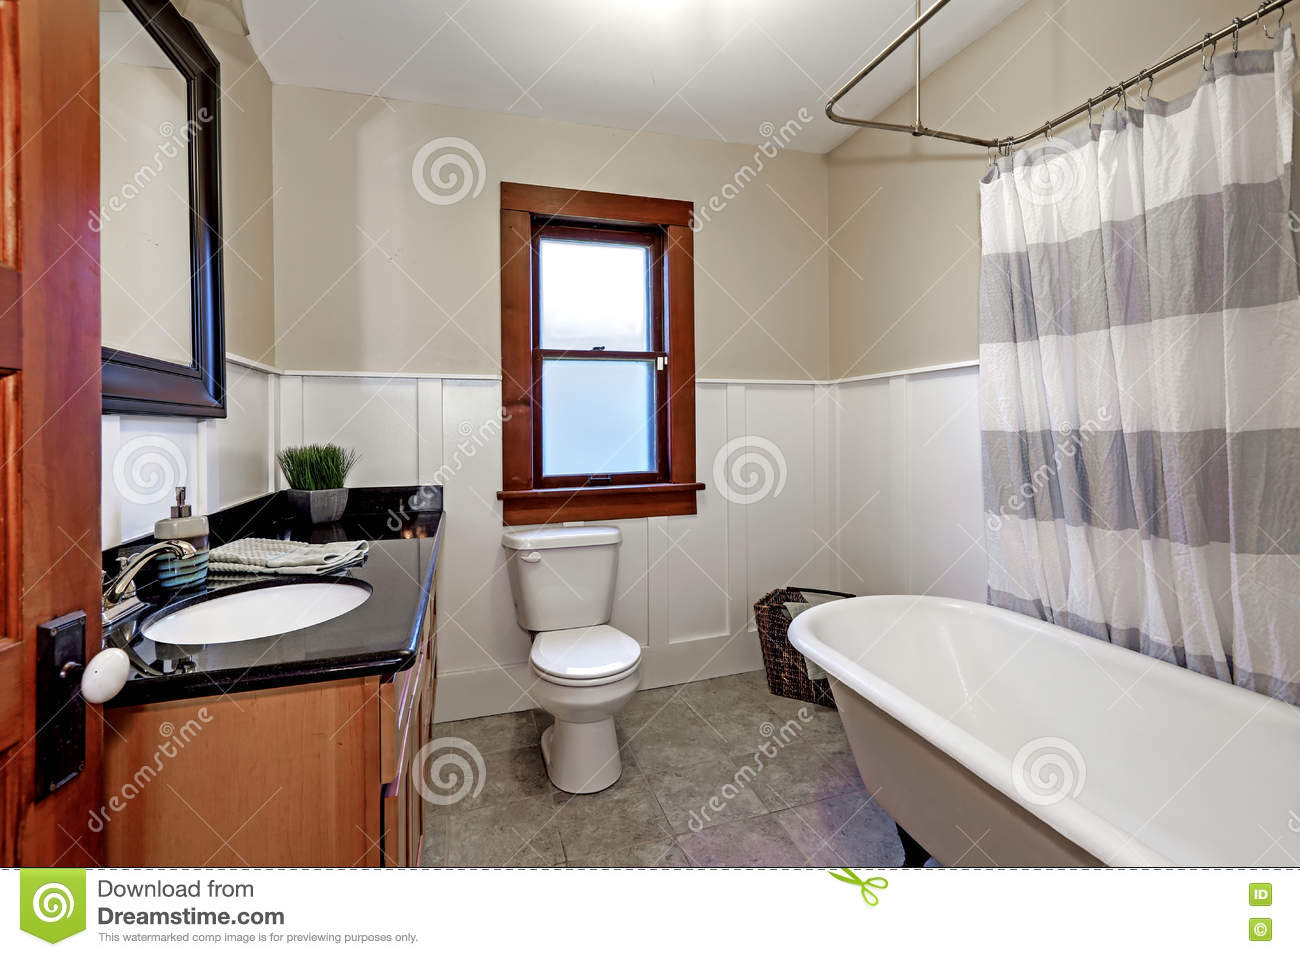 Simple Style Renovated Bathroom Interior In Old American House Stock